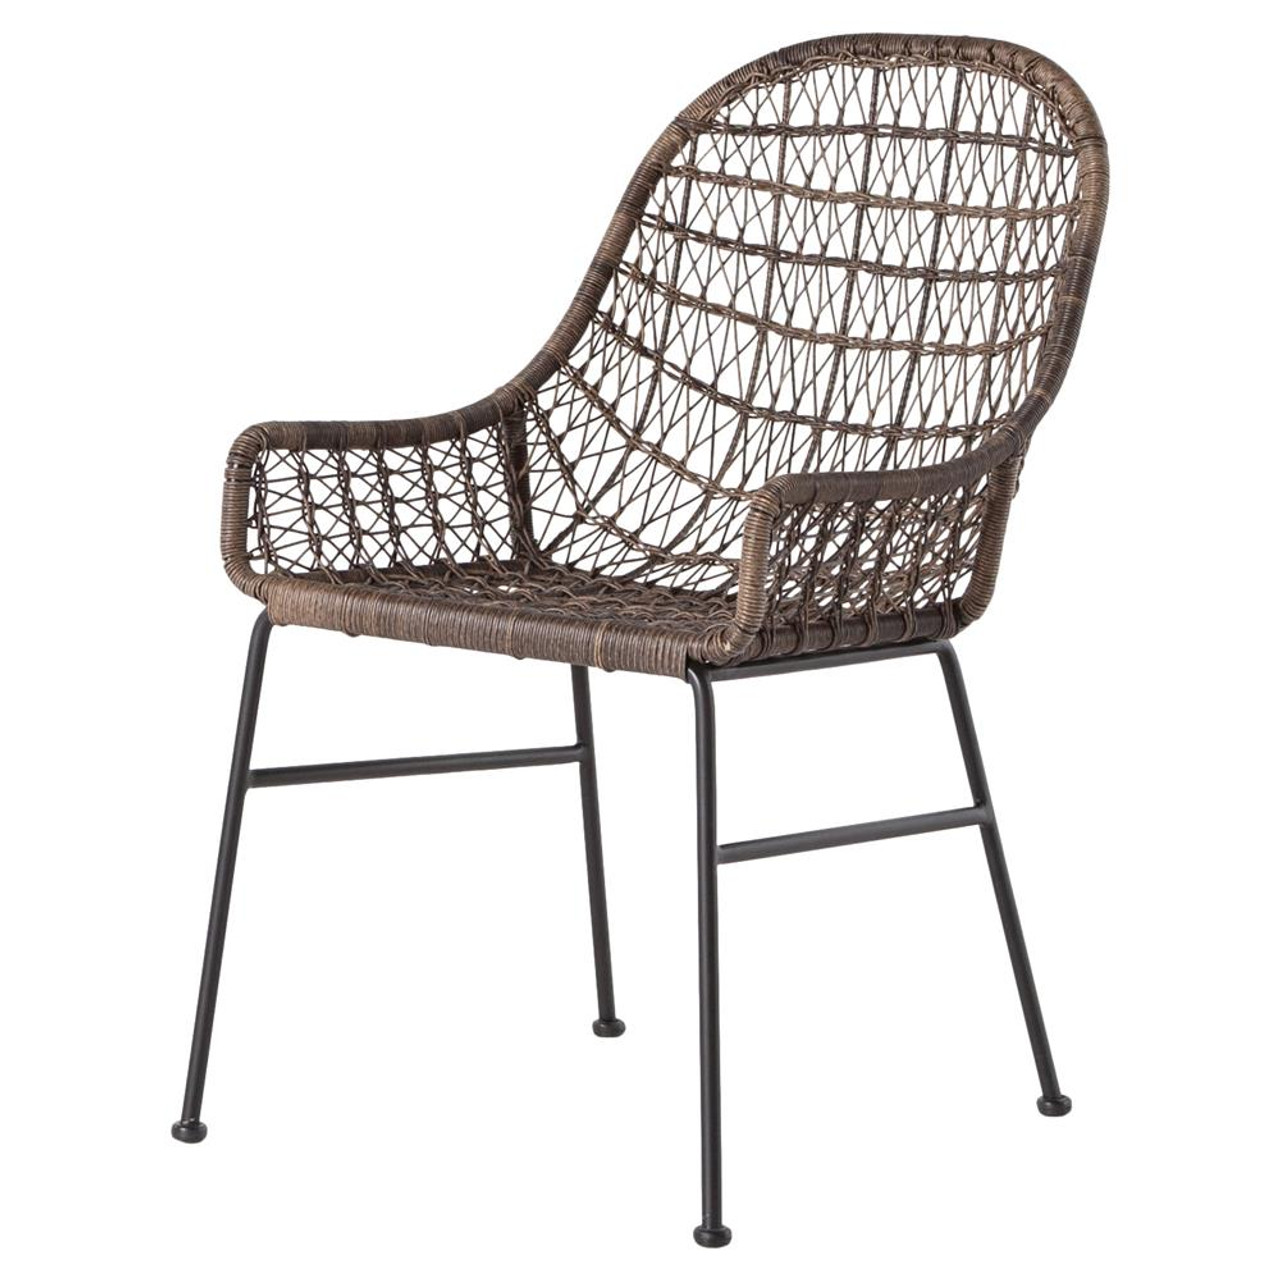 Wicker Outdoor Dining Chairs Bandera Woven Wicker Outdoor Low Arm Dining Chair